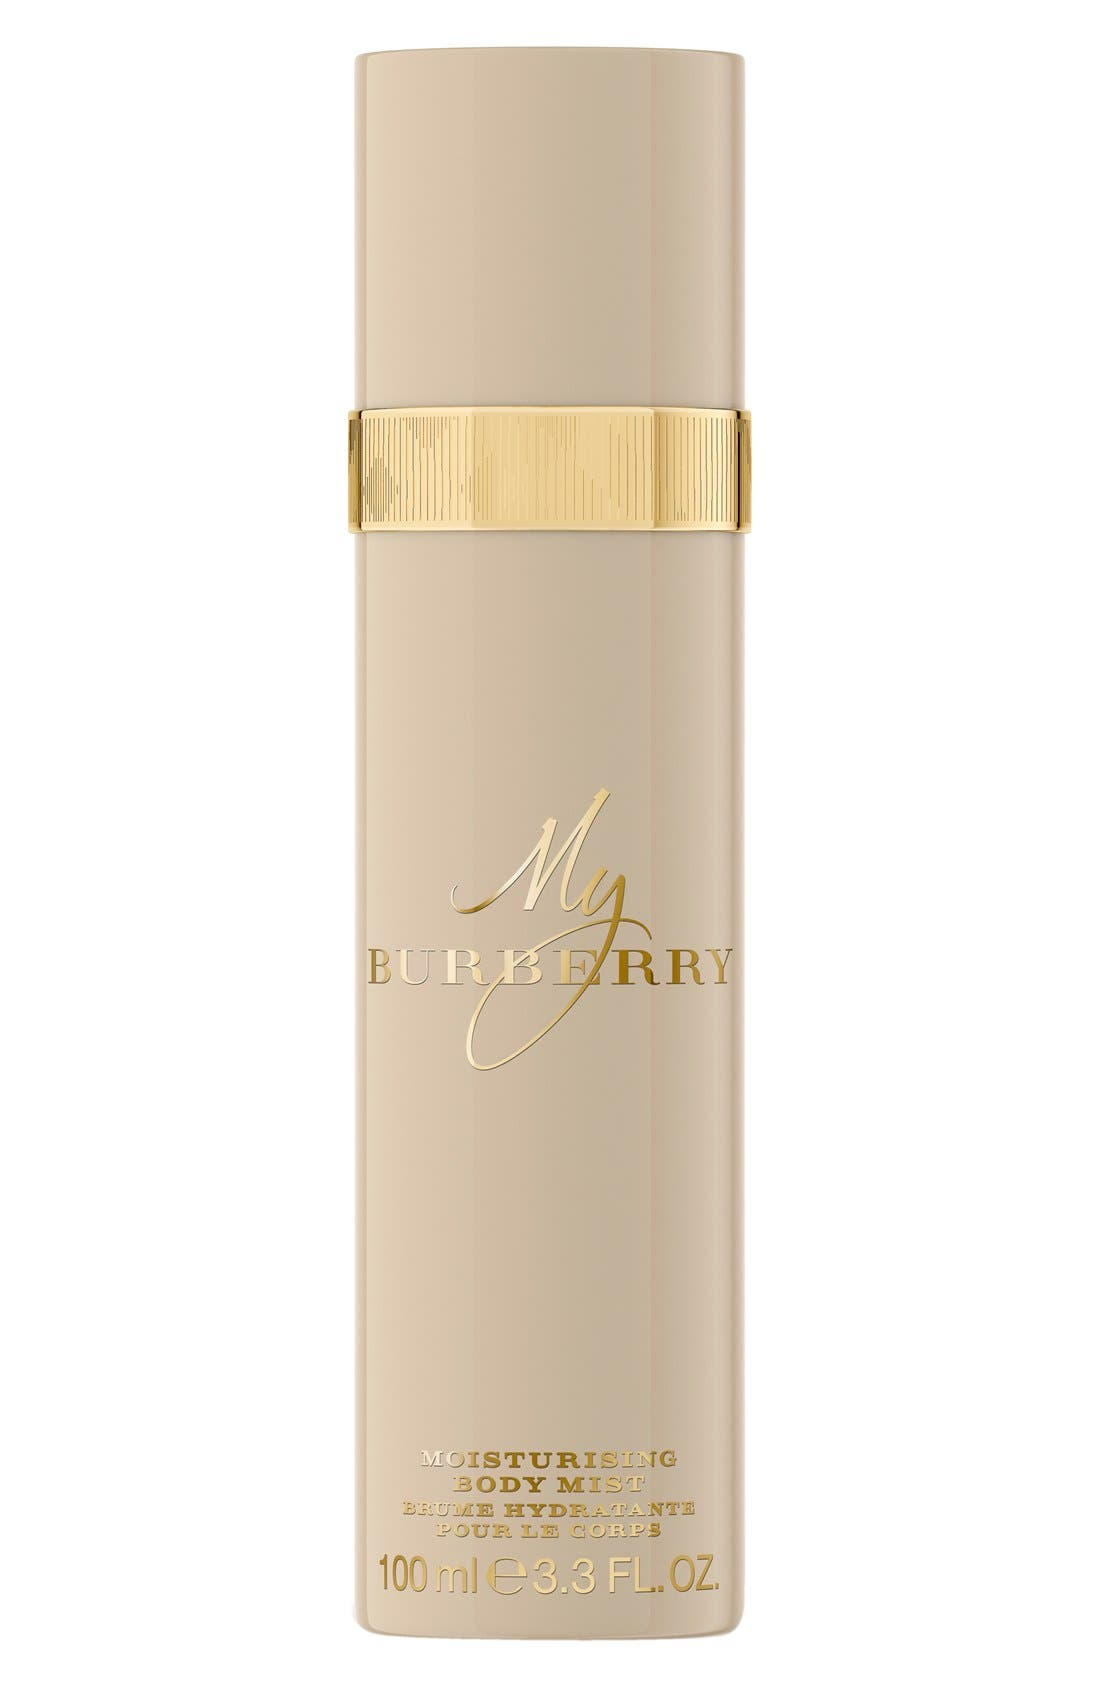 Burberry 'My Burberry' Moisturizing Body Mist